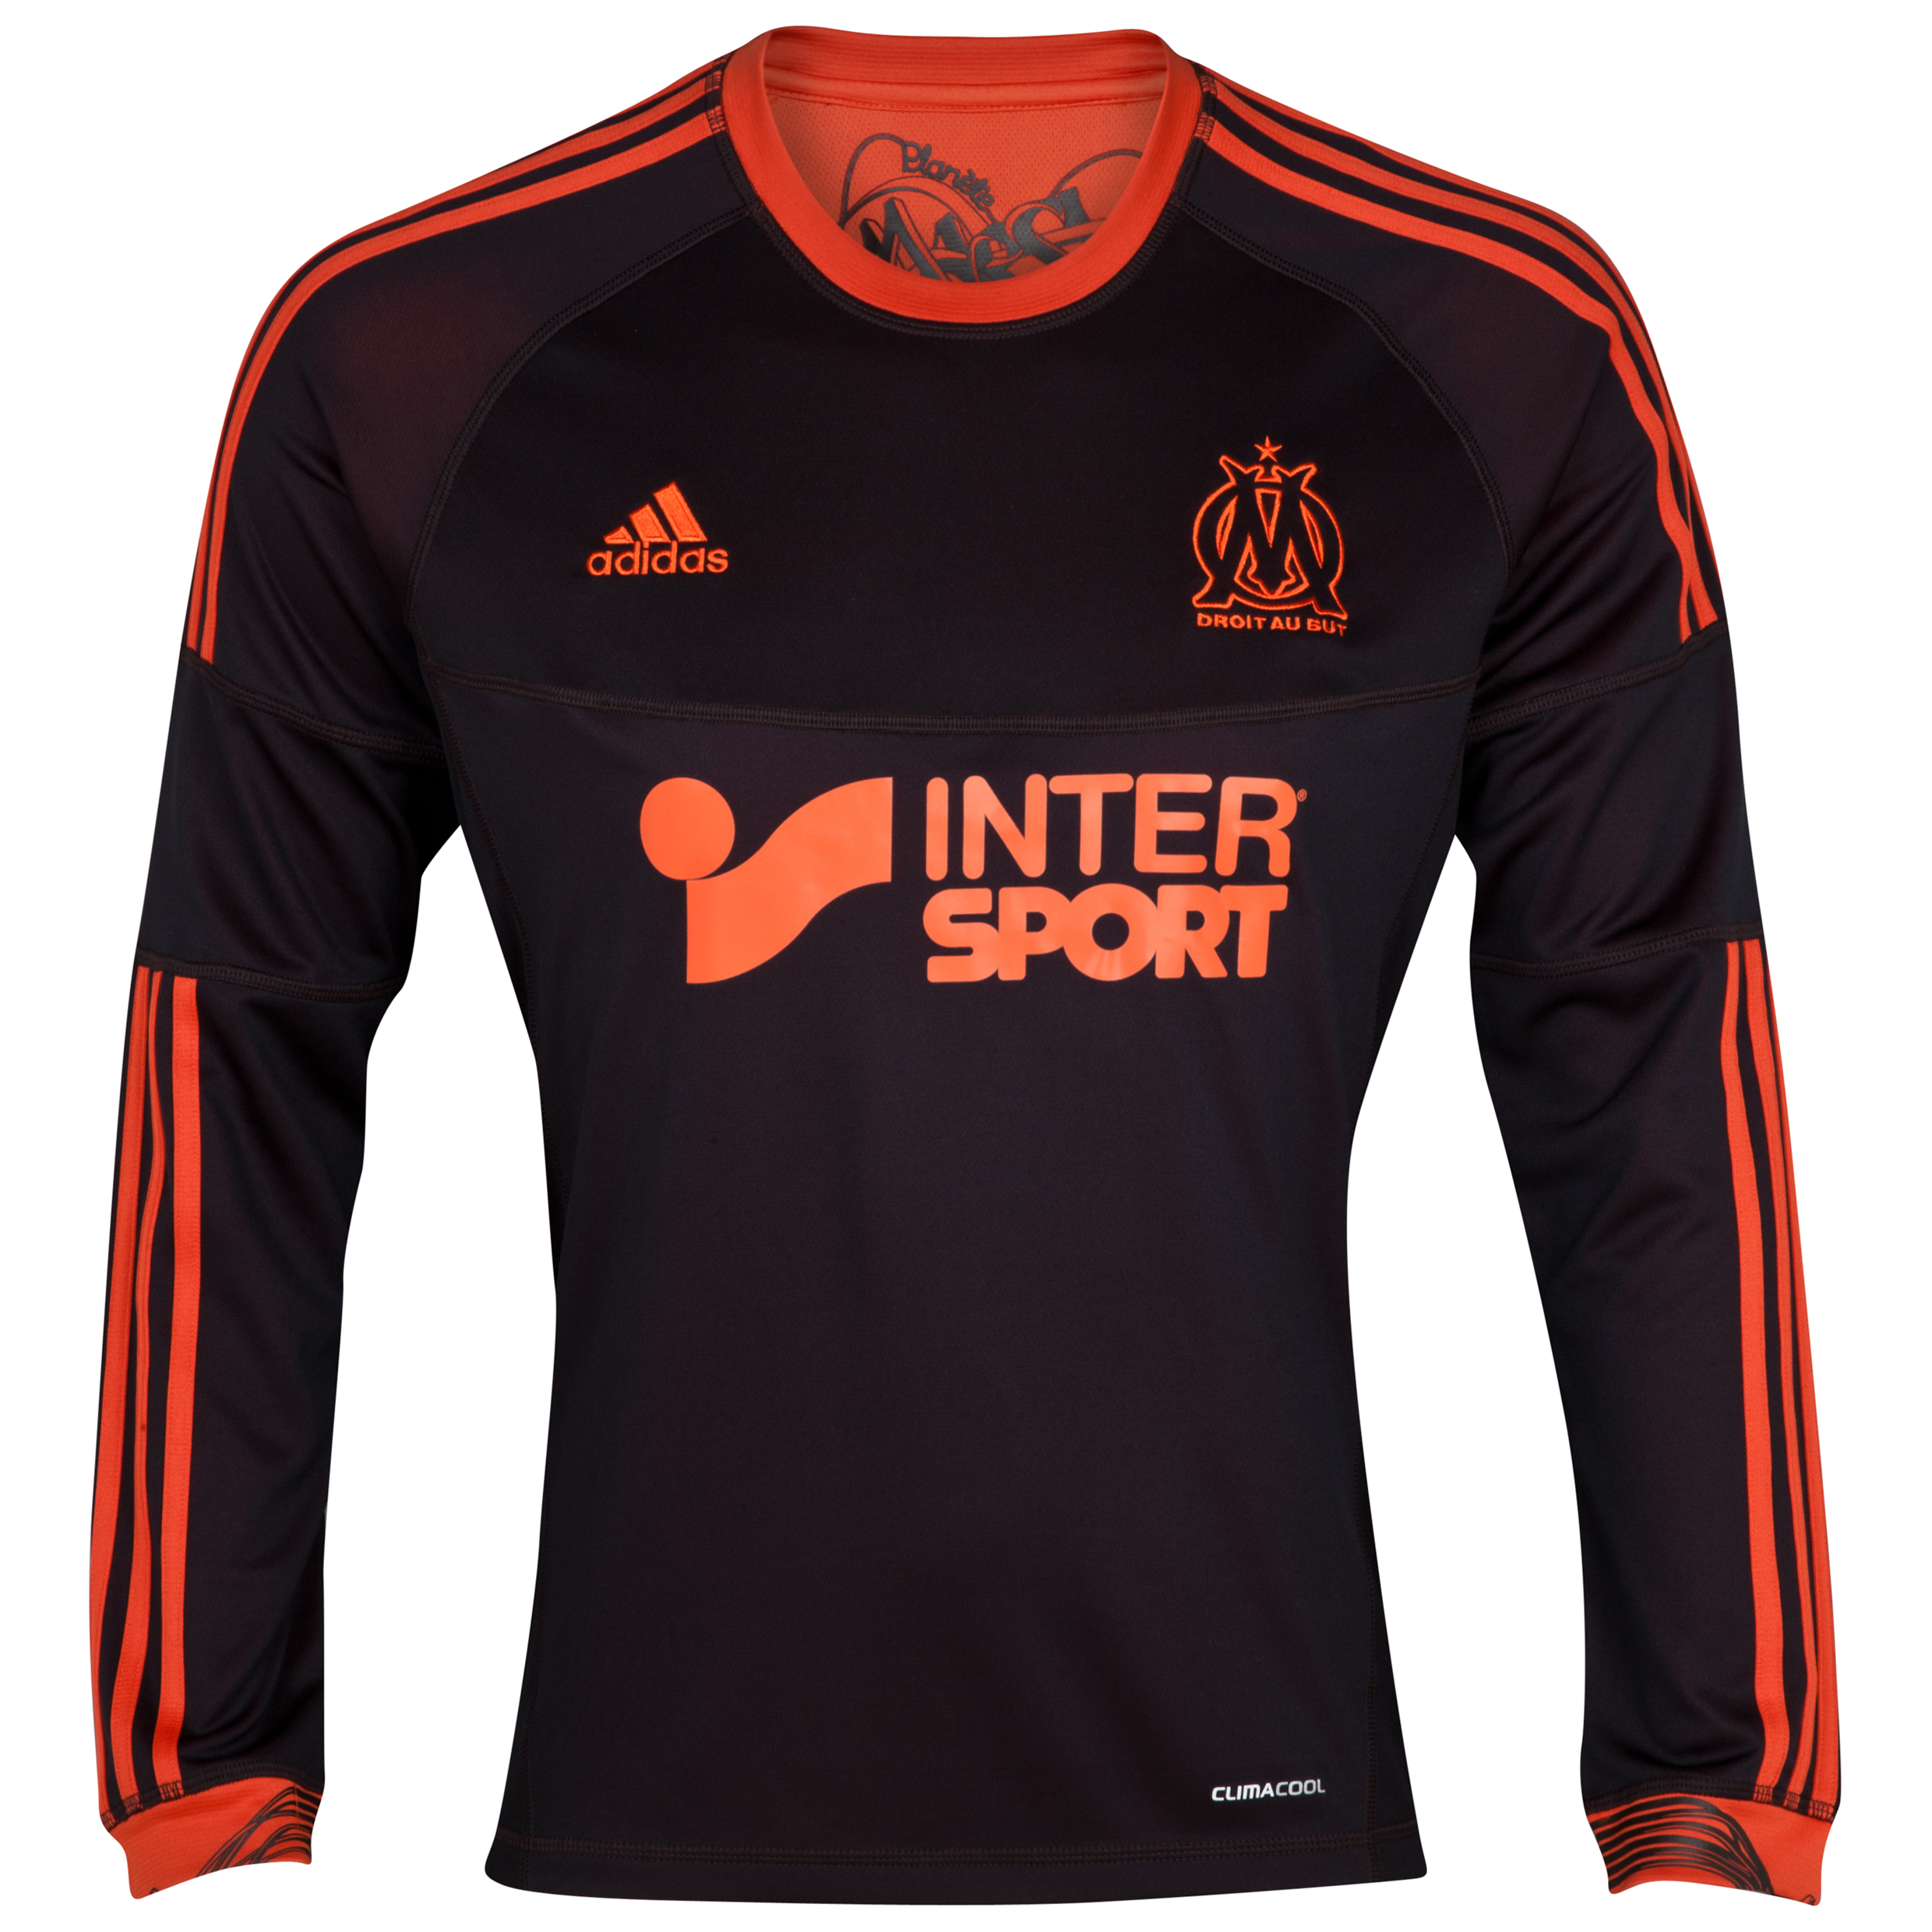 Olympique de Marseille Replica Third Shirt 2012/13 - Long Sleeved